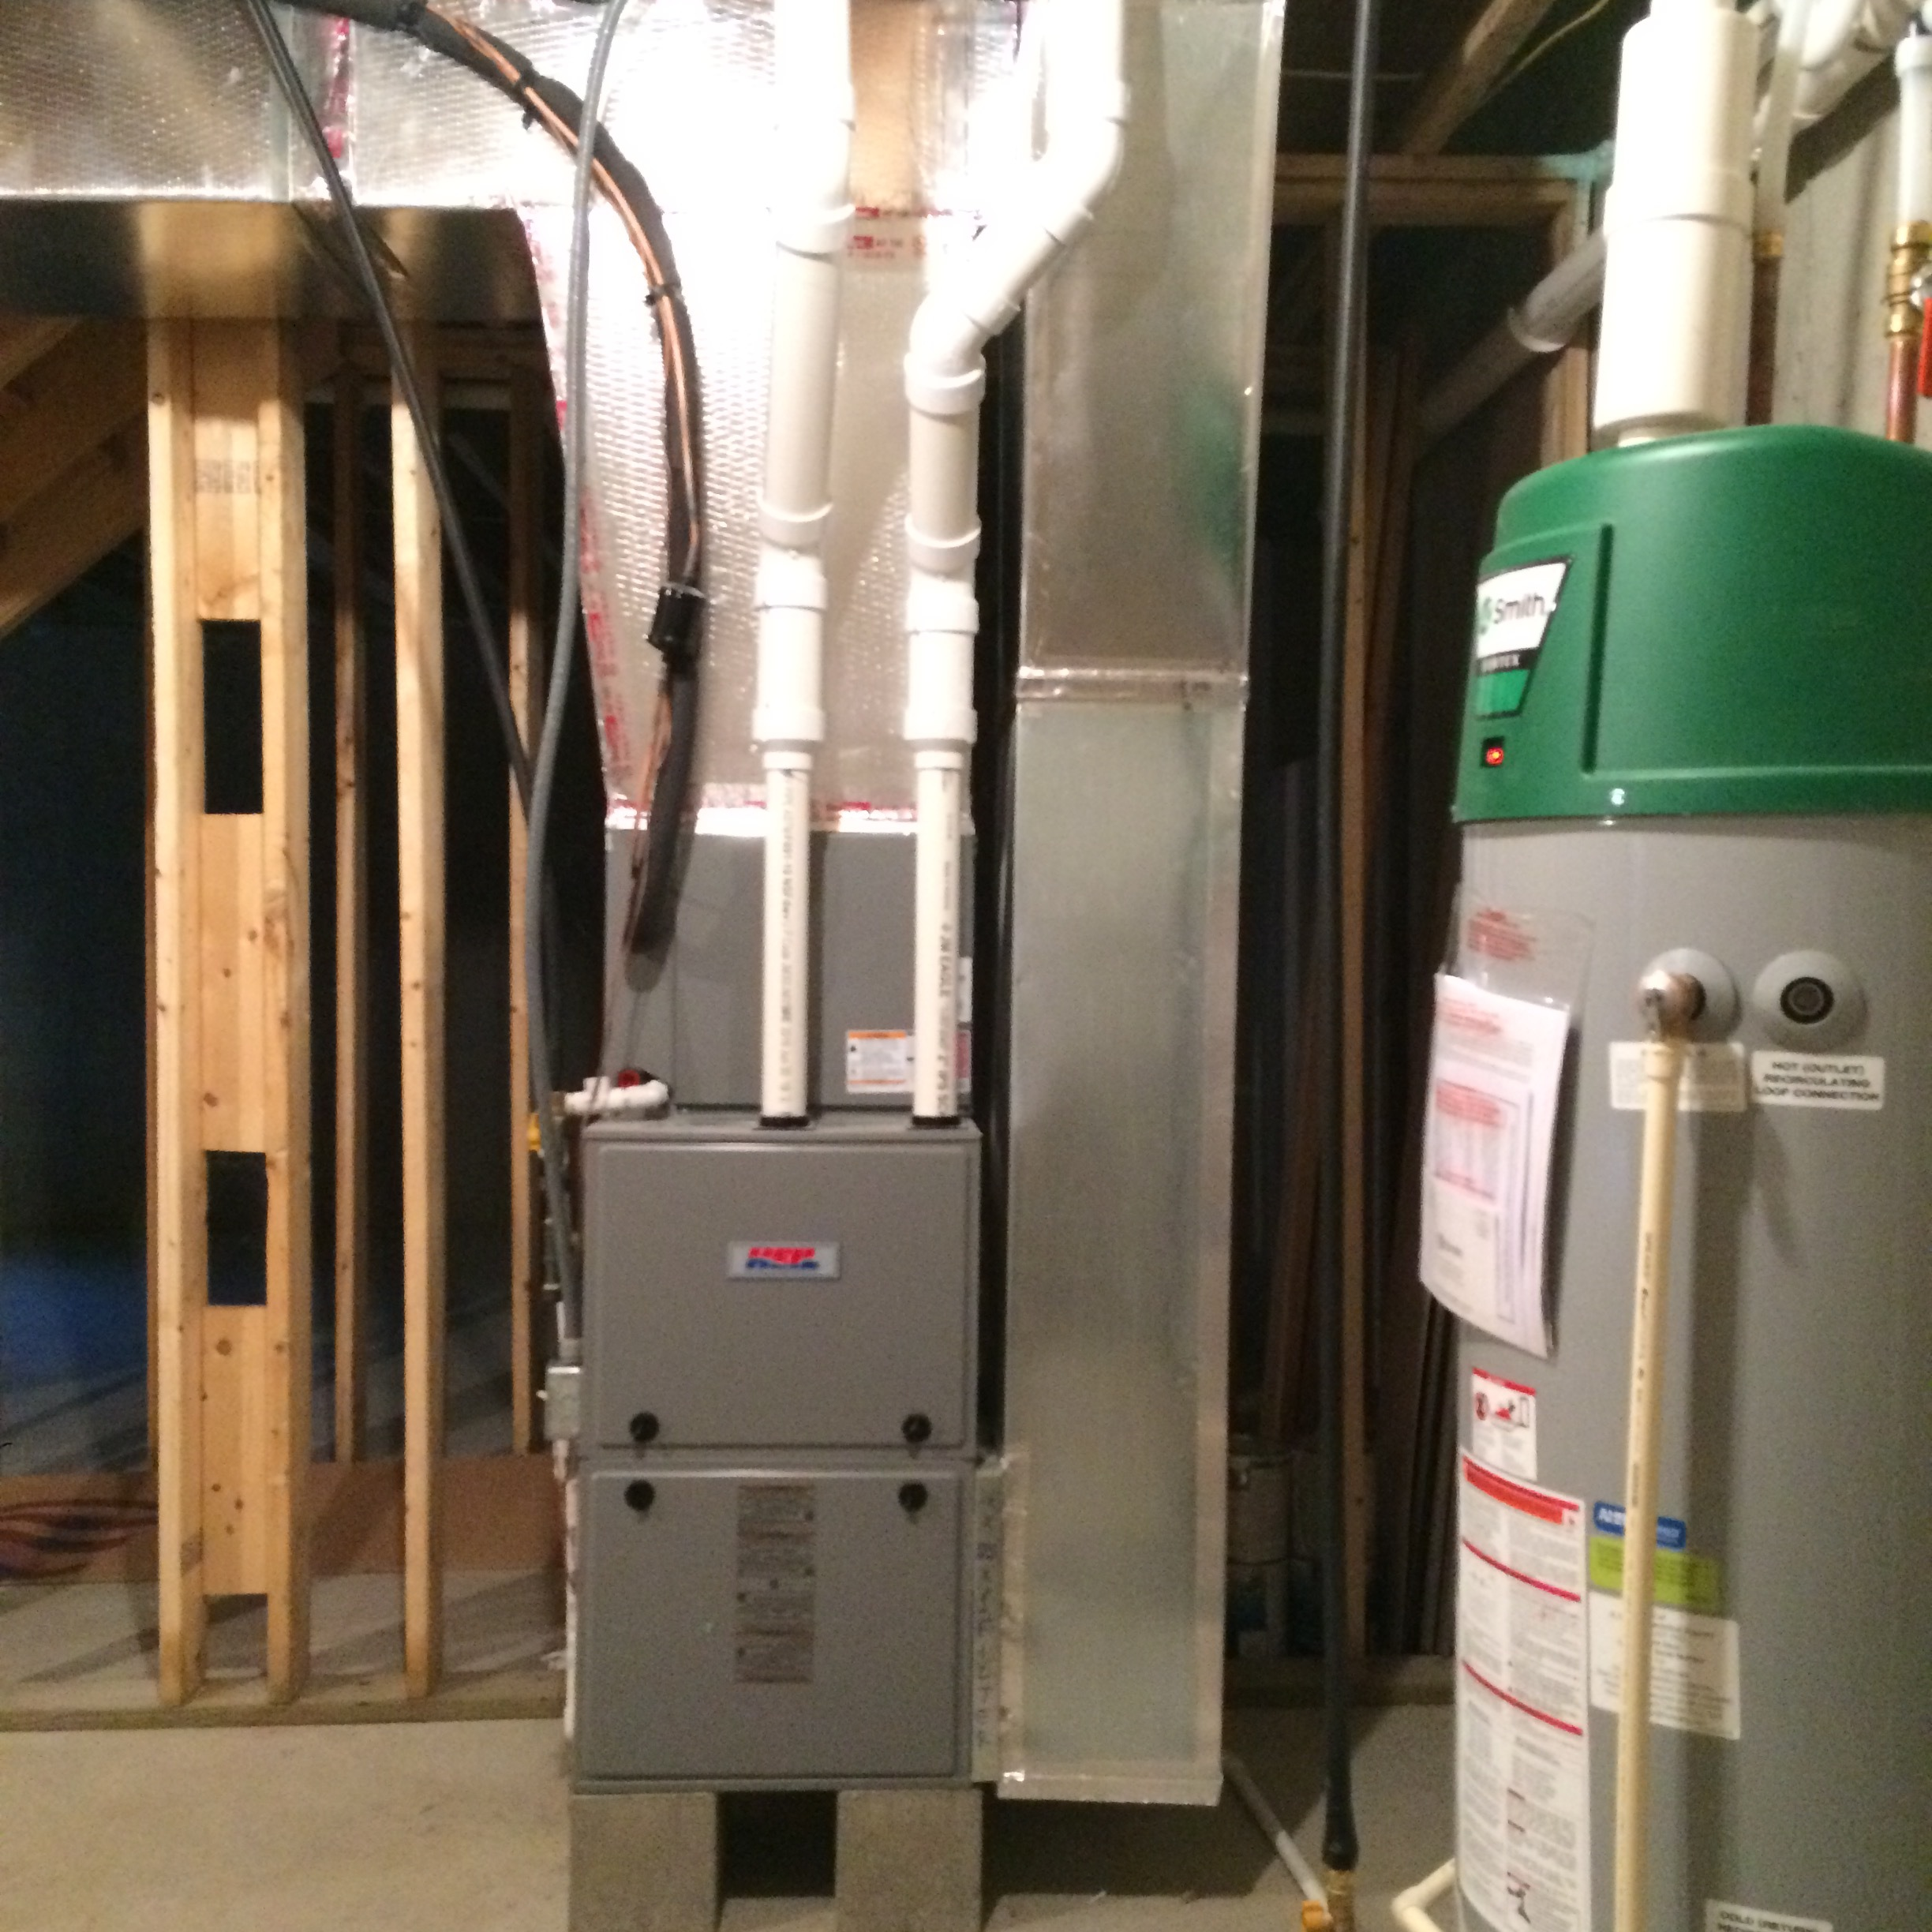 High Efficiency Furnace and Water Heater - These systems are 96% efficient